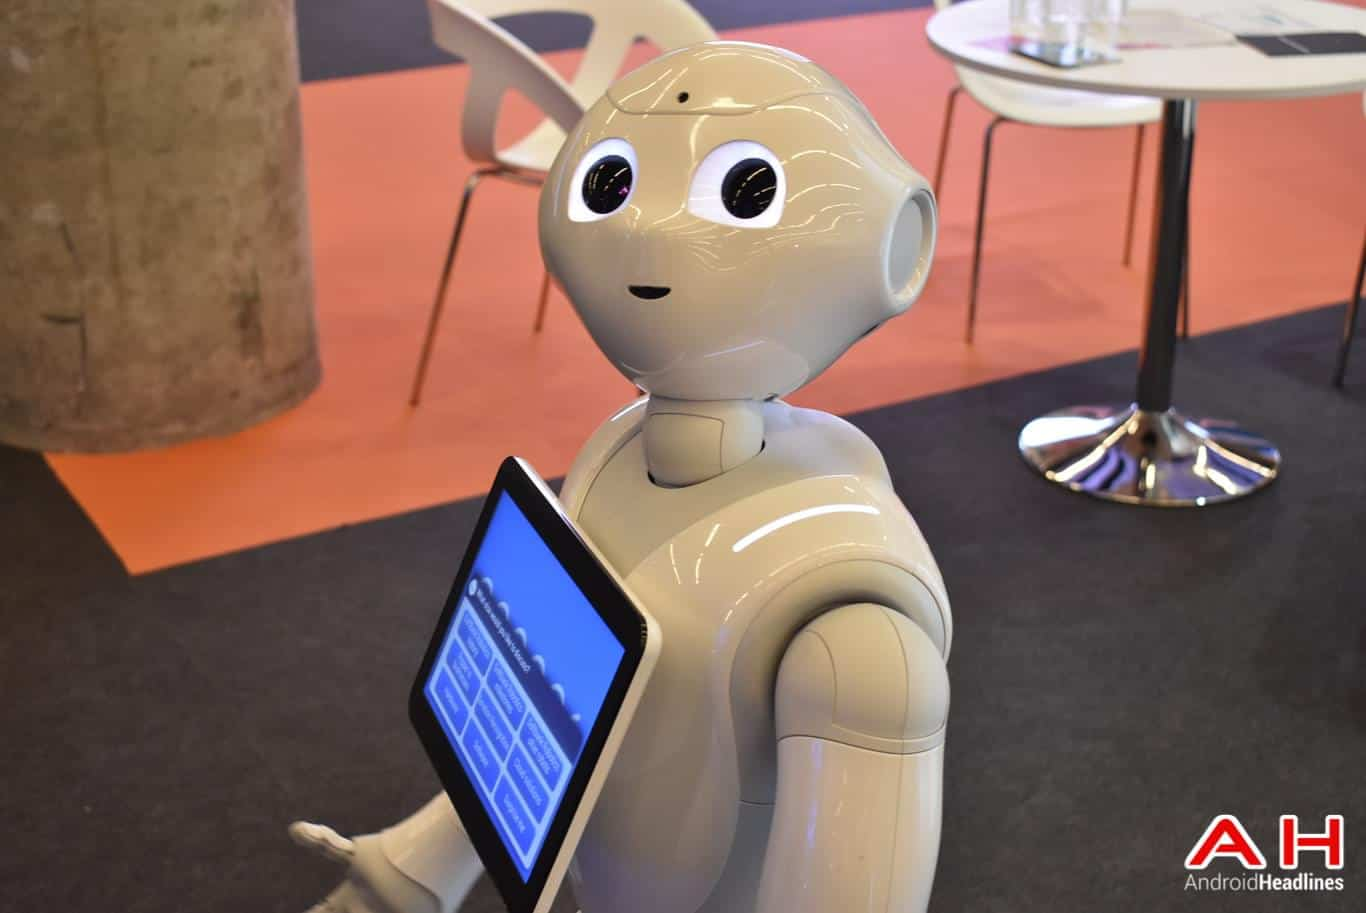 SoftBank Pepper Robot AH 10